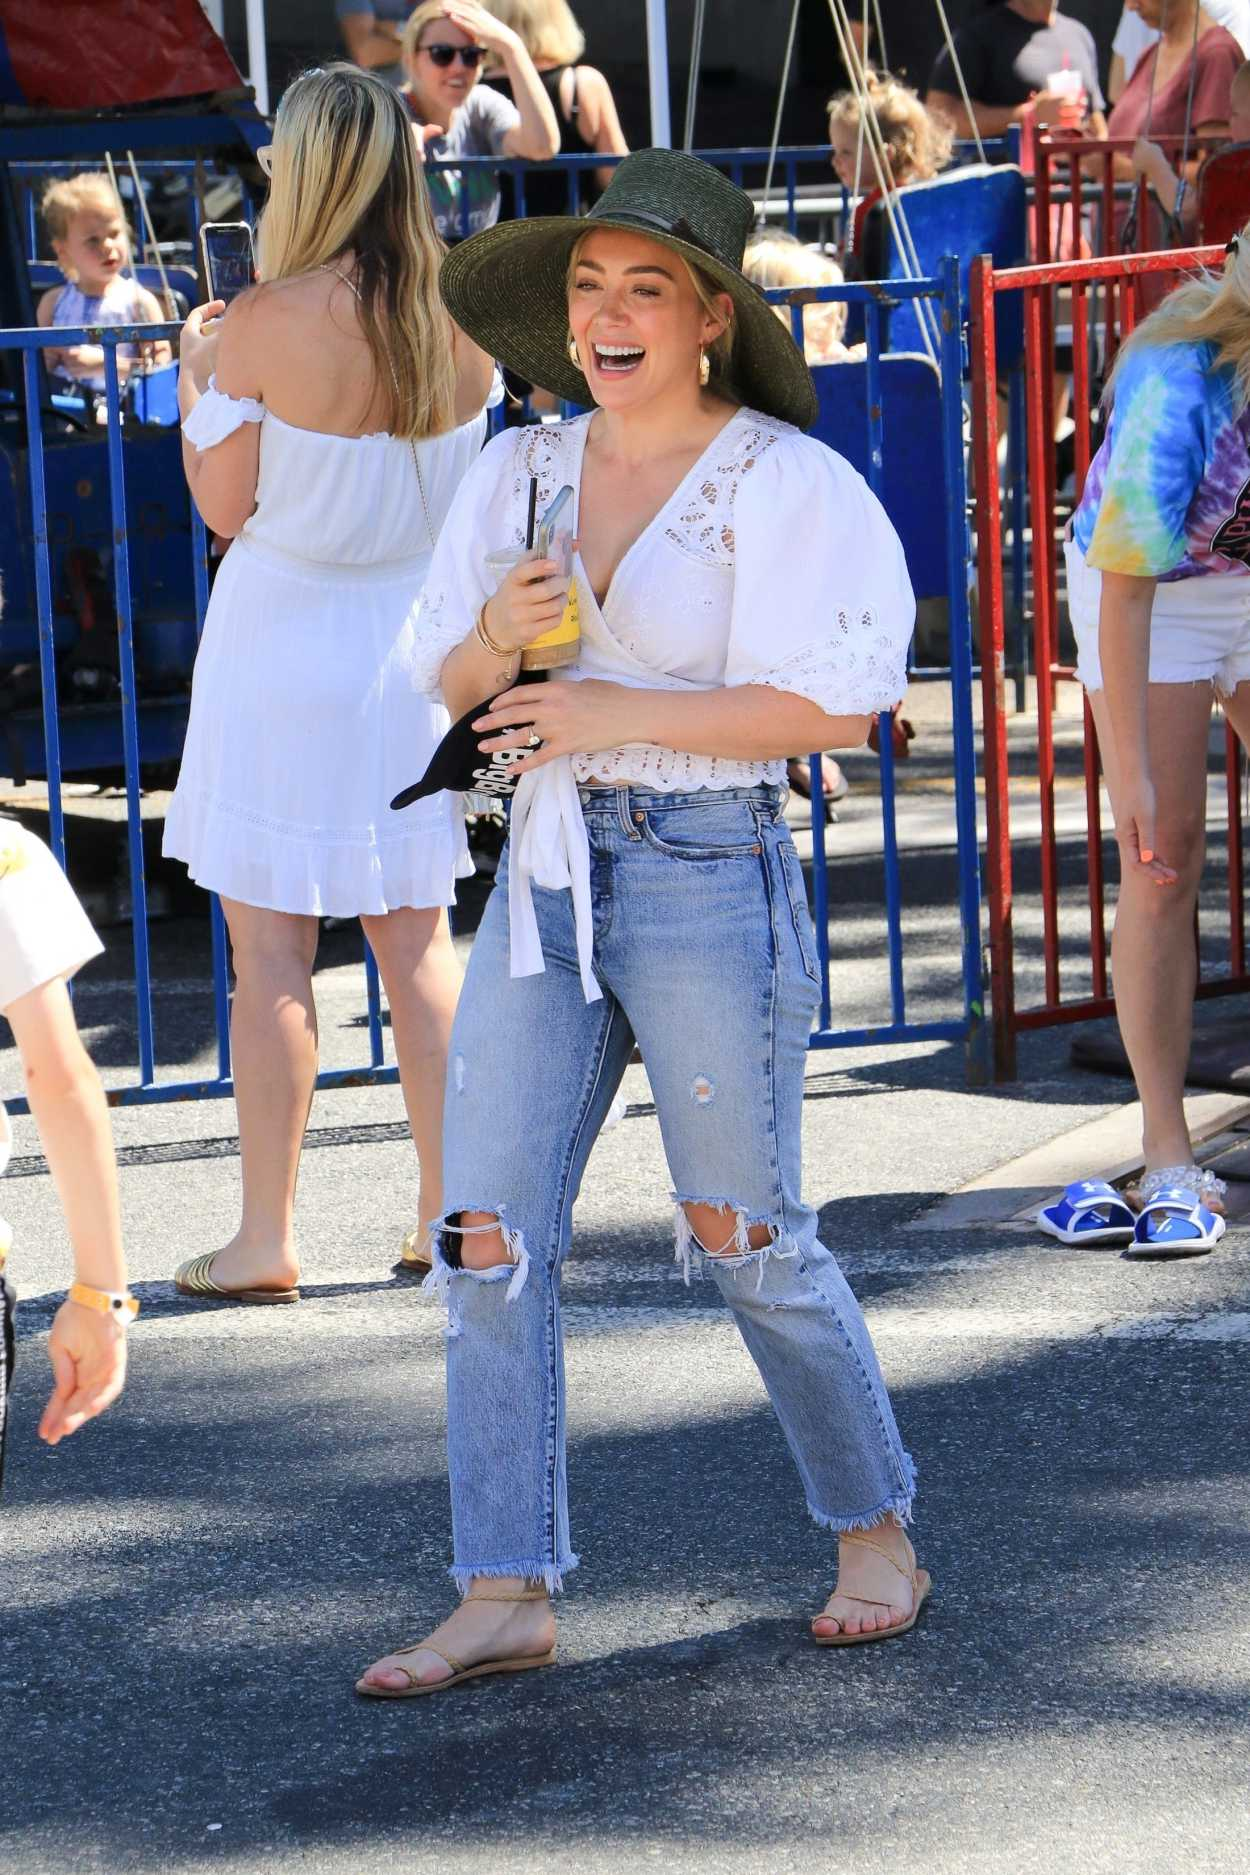 Hilary Duff in a White Blouse